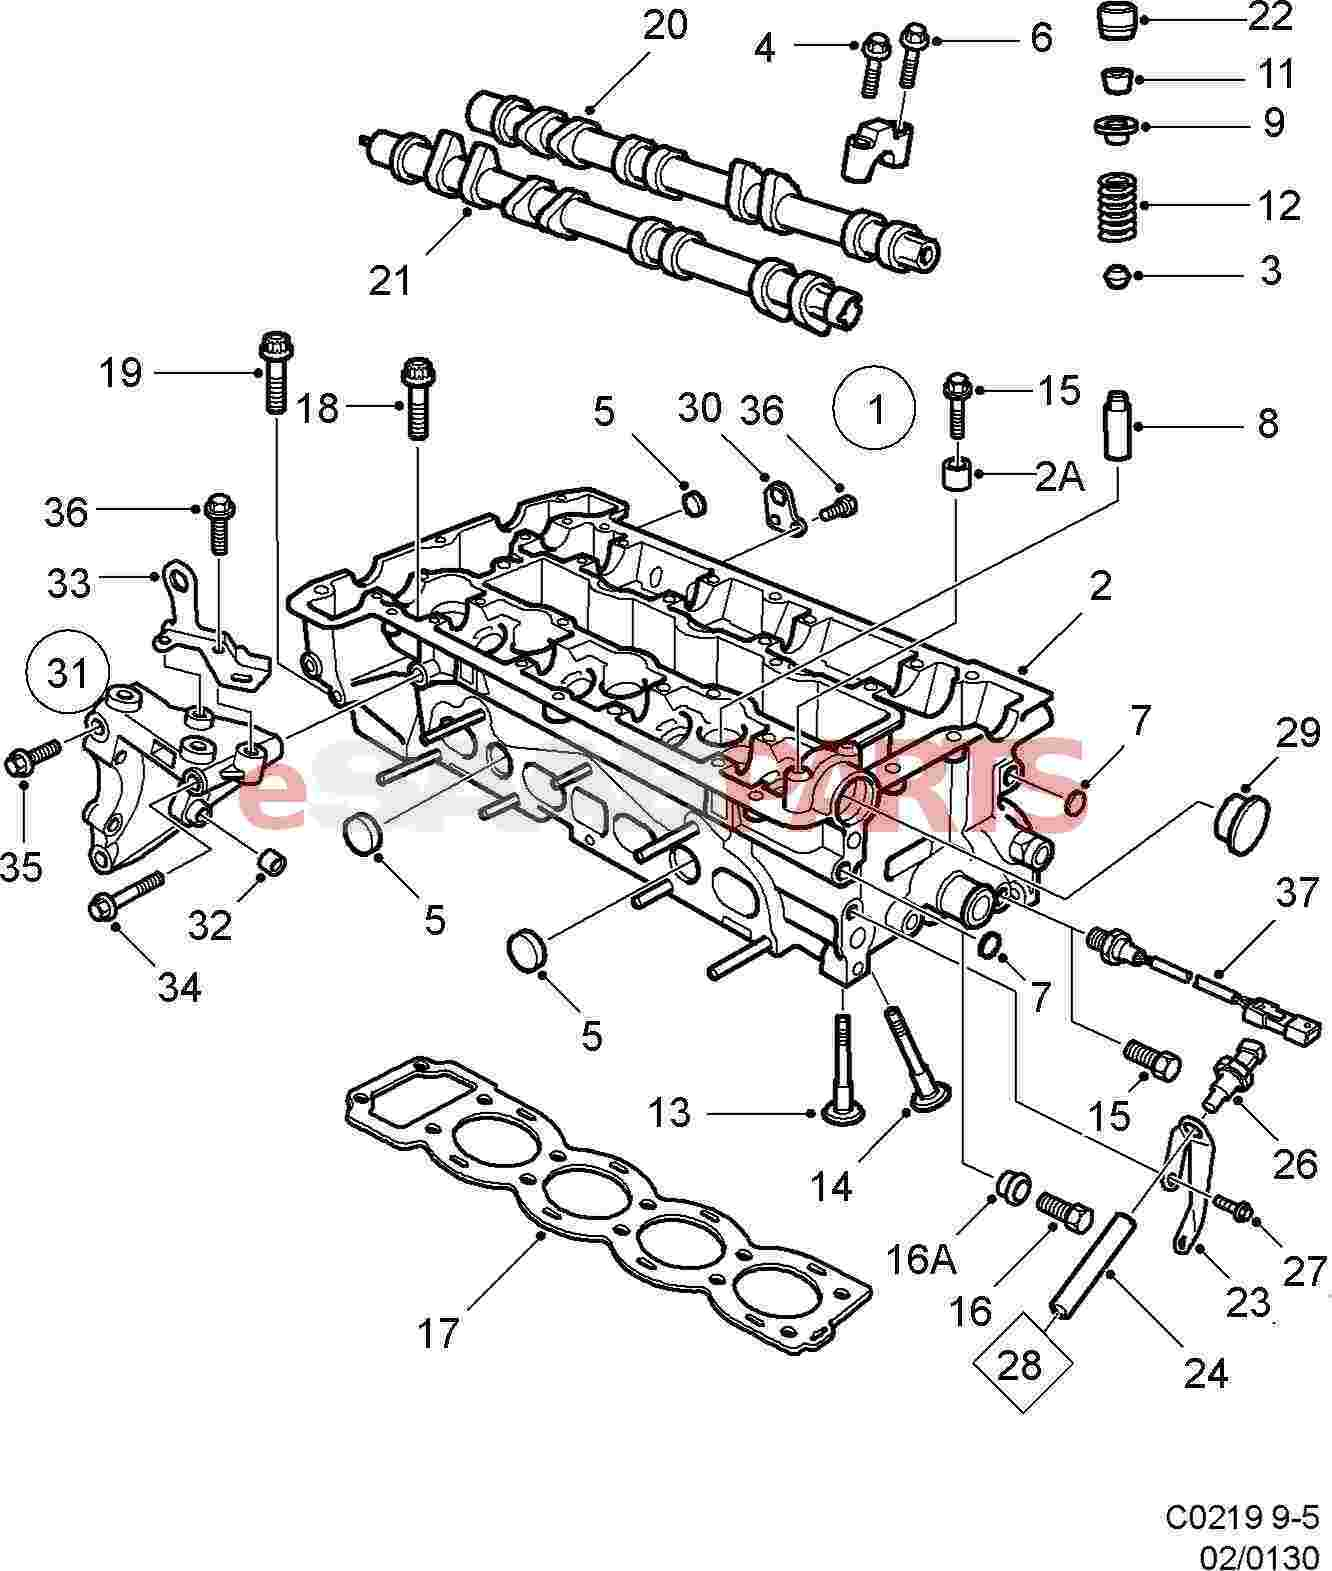 I Head Engine Diagram 4l80e Internal Wiring Harness